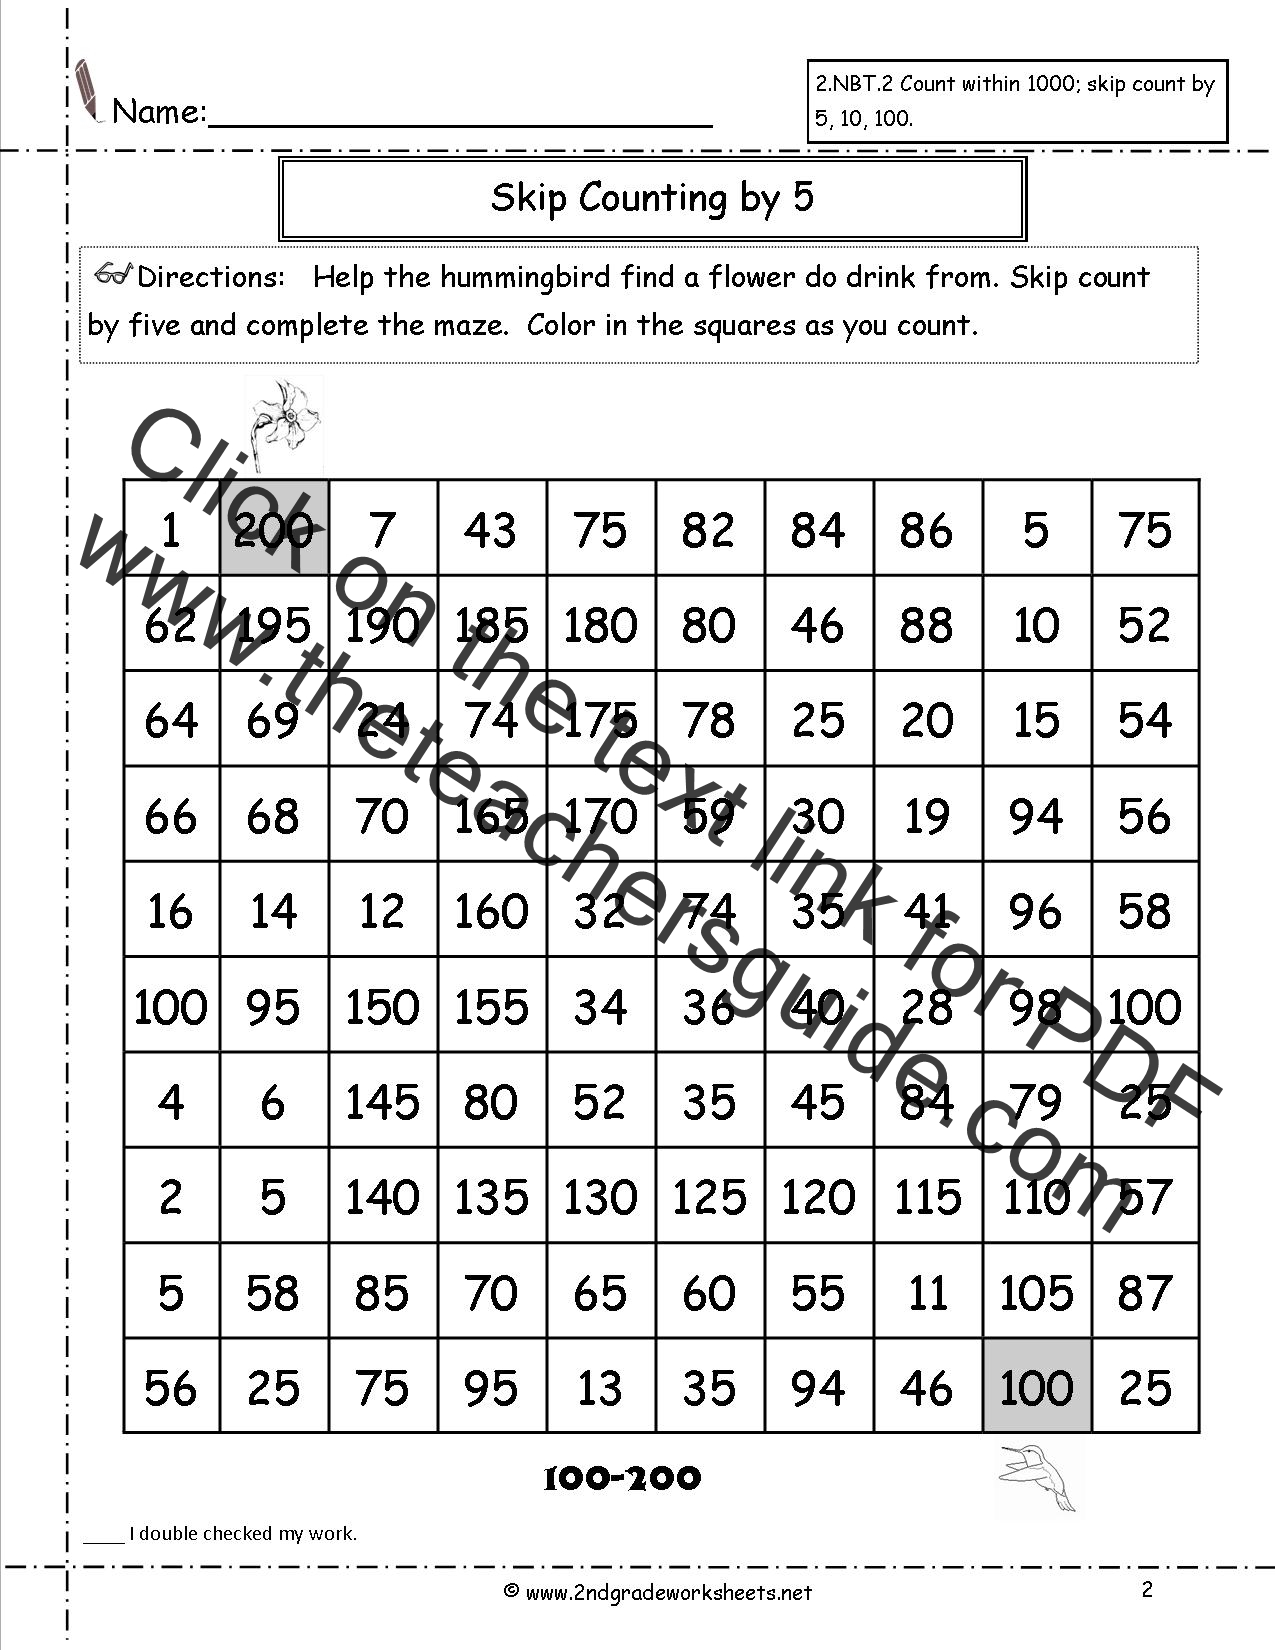 Worksheet First Grade Counting Worksheets first grade skip counting worksheets k5 learning free worksheets